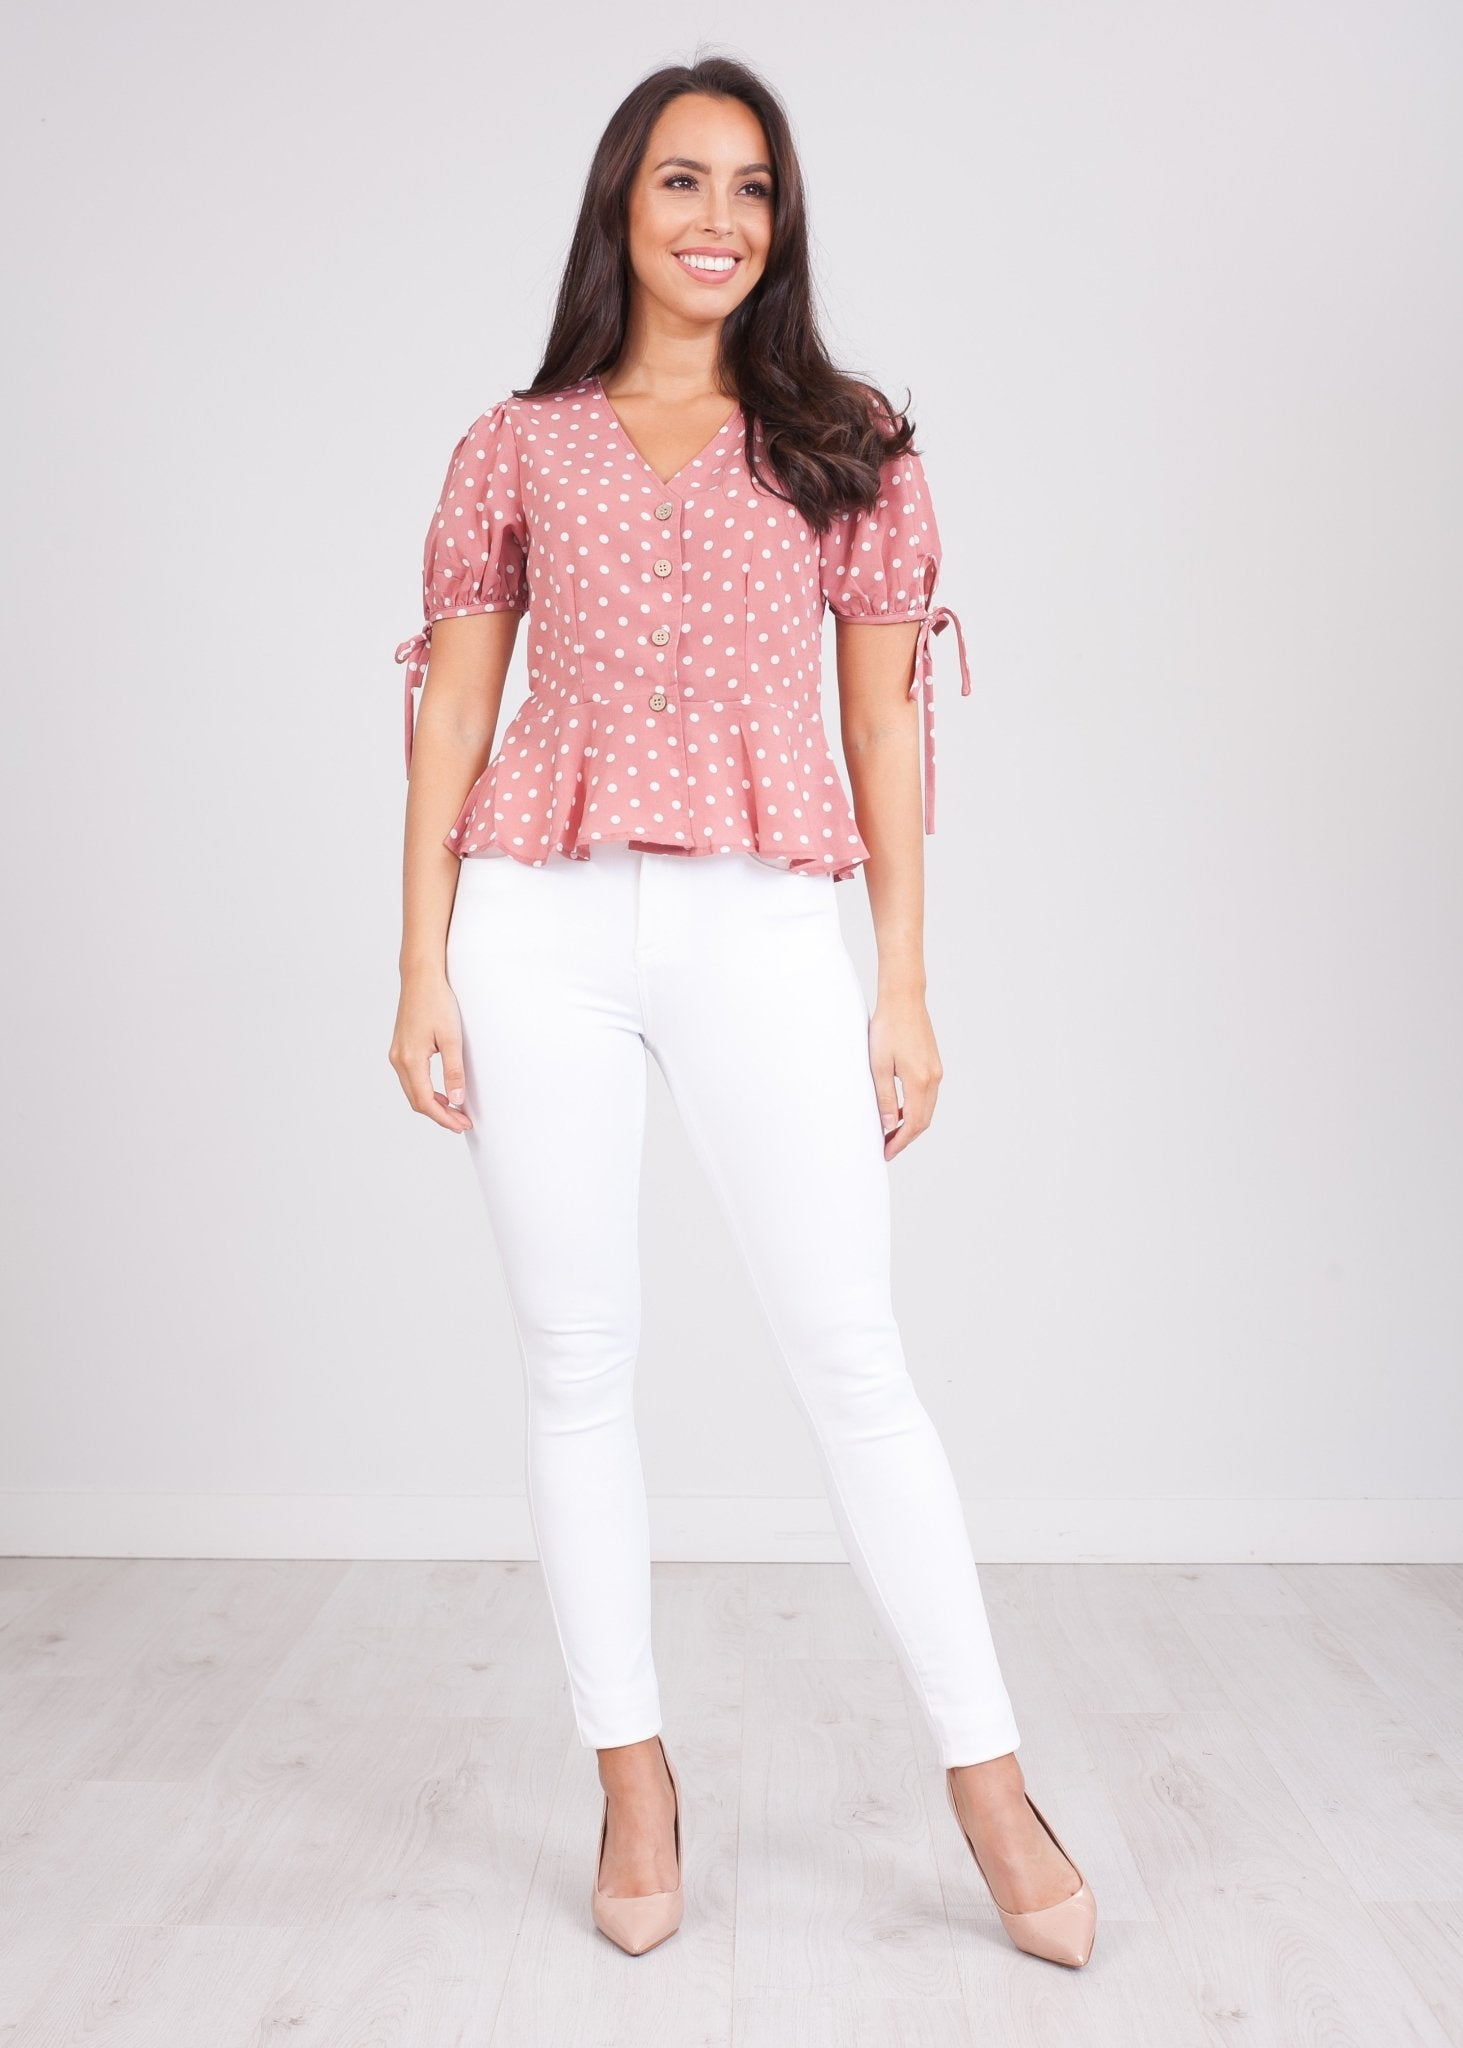 Nora Pink Polka Dot Top - The Walk in Wardrobe